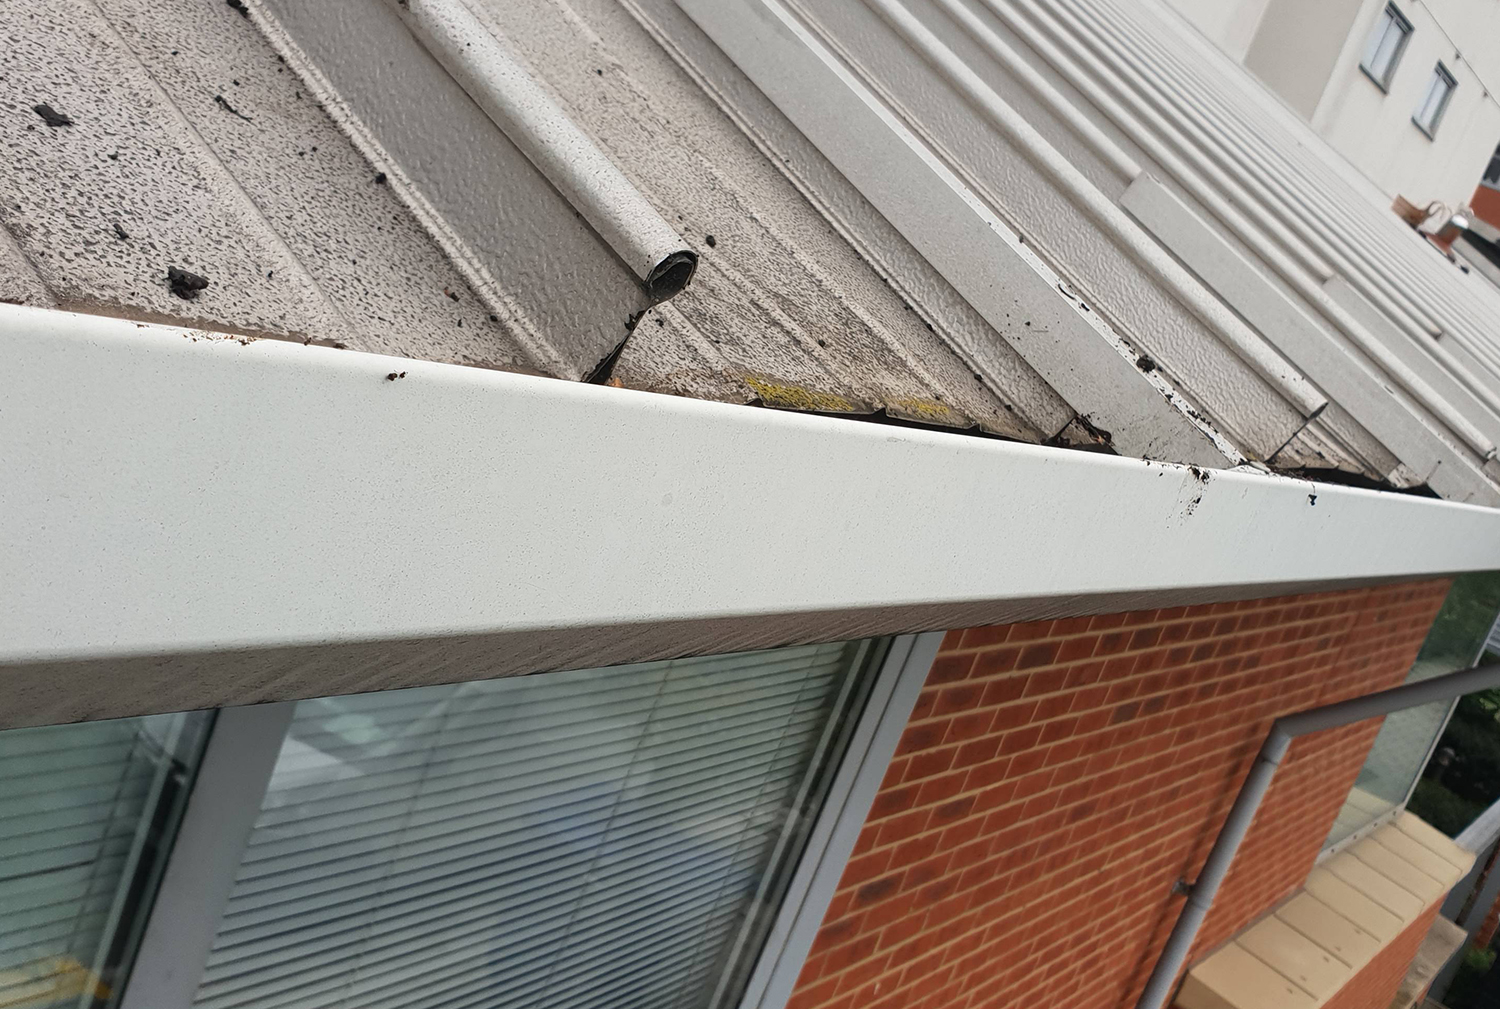 High level gutter cleaning job